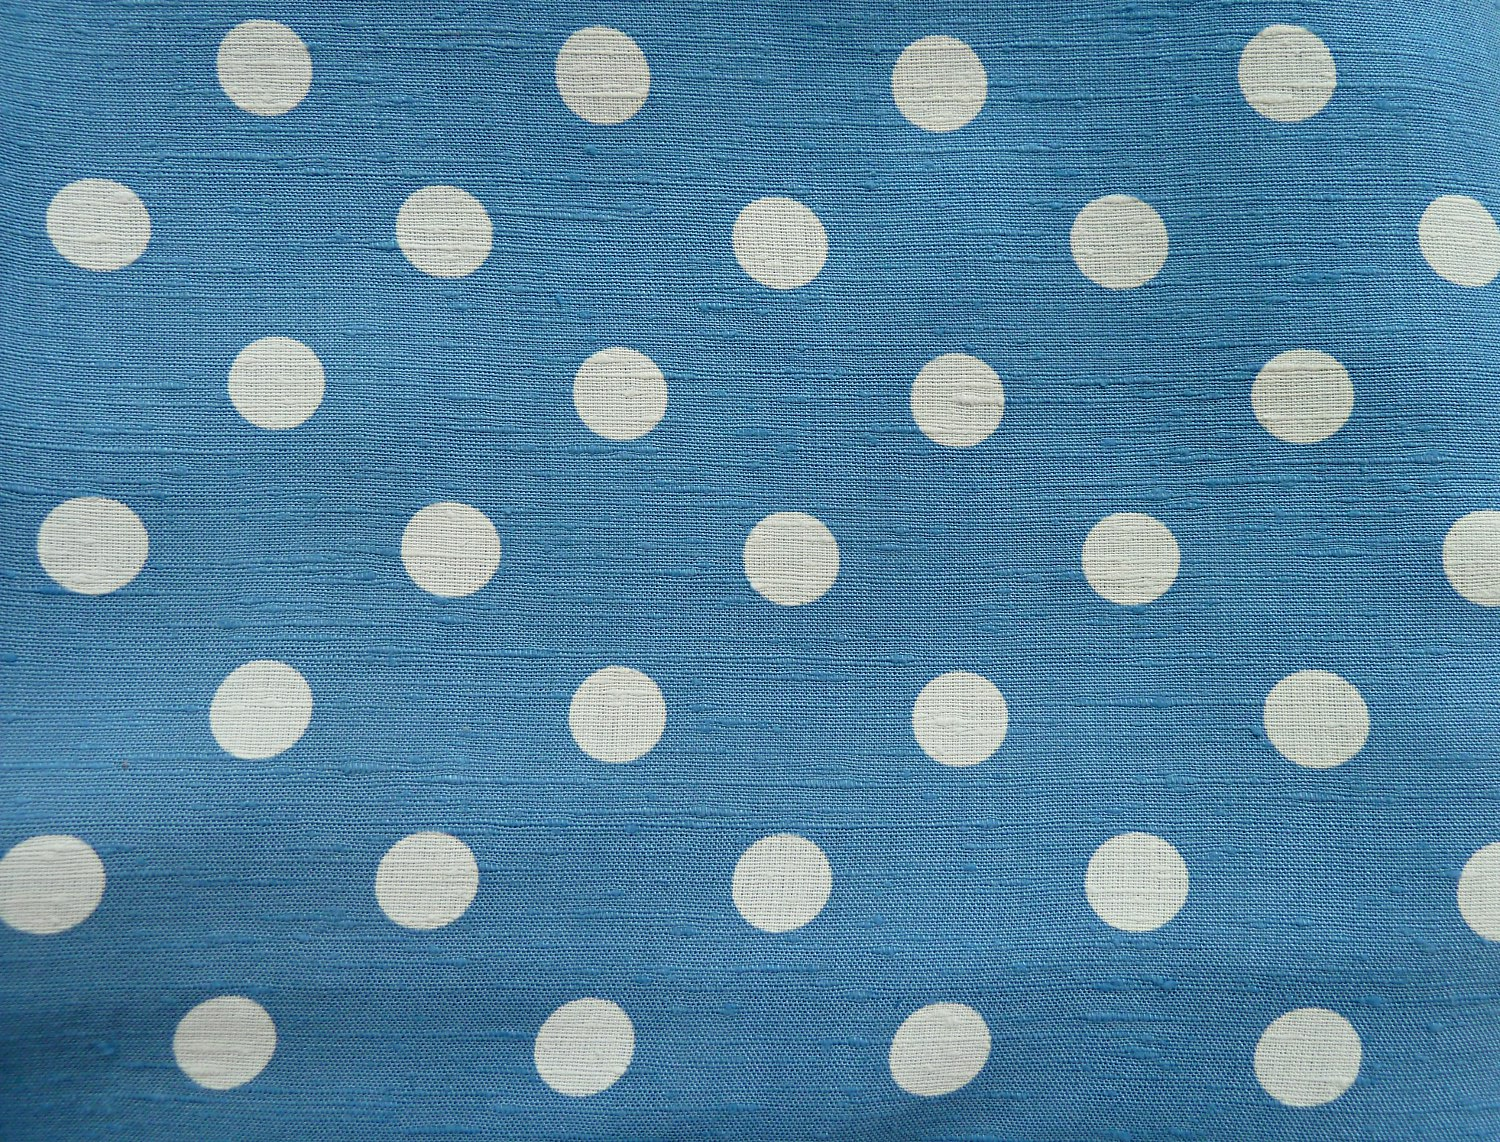 1950s fabric images galleries with a for Retro fabric